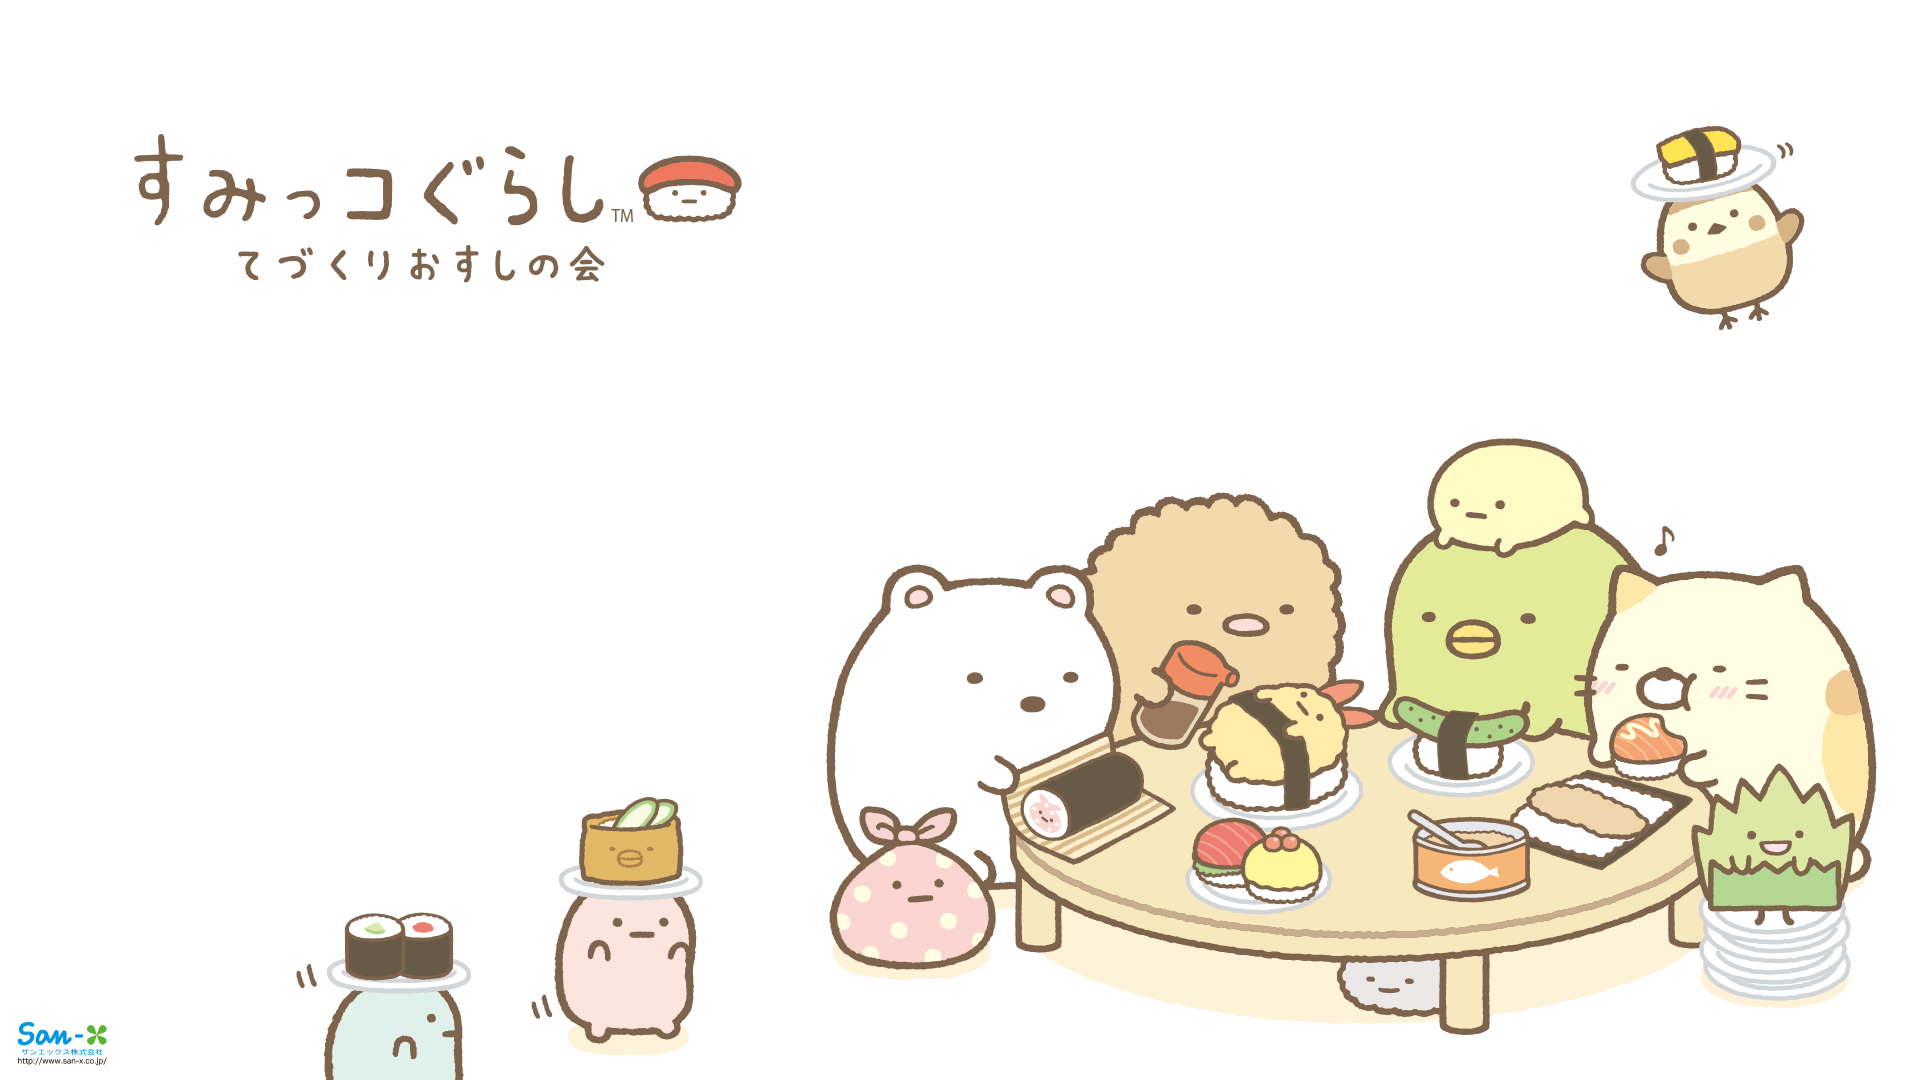 Wallpaper iphone san x - Image Result For Sumikko Gurashi Wallpaper